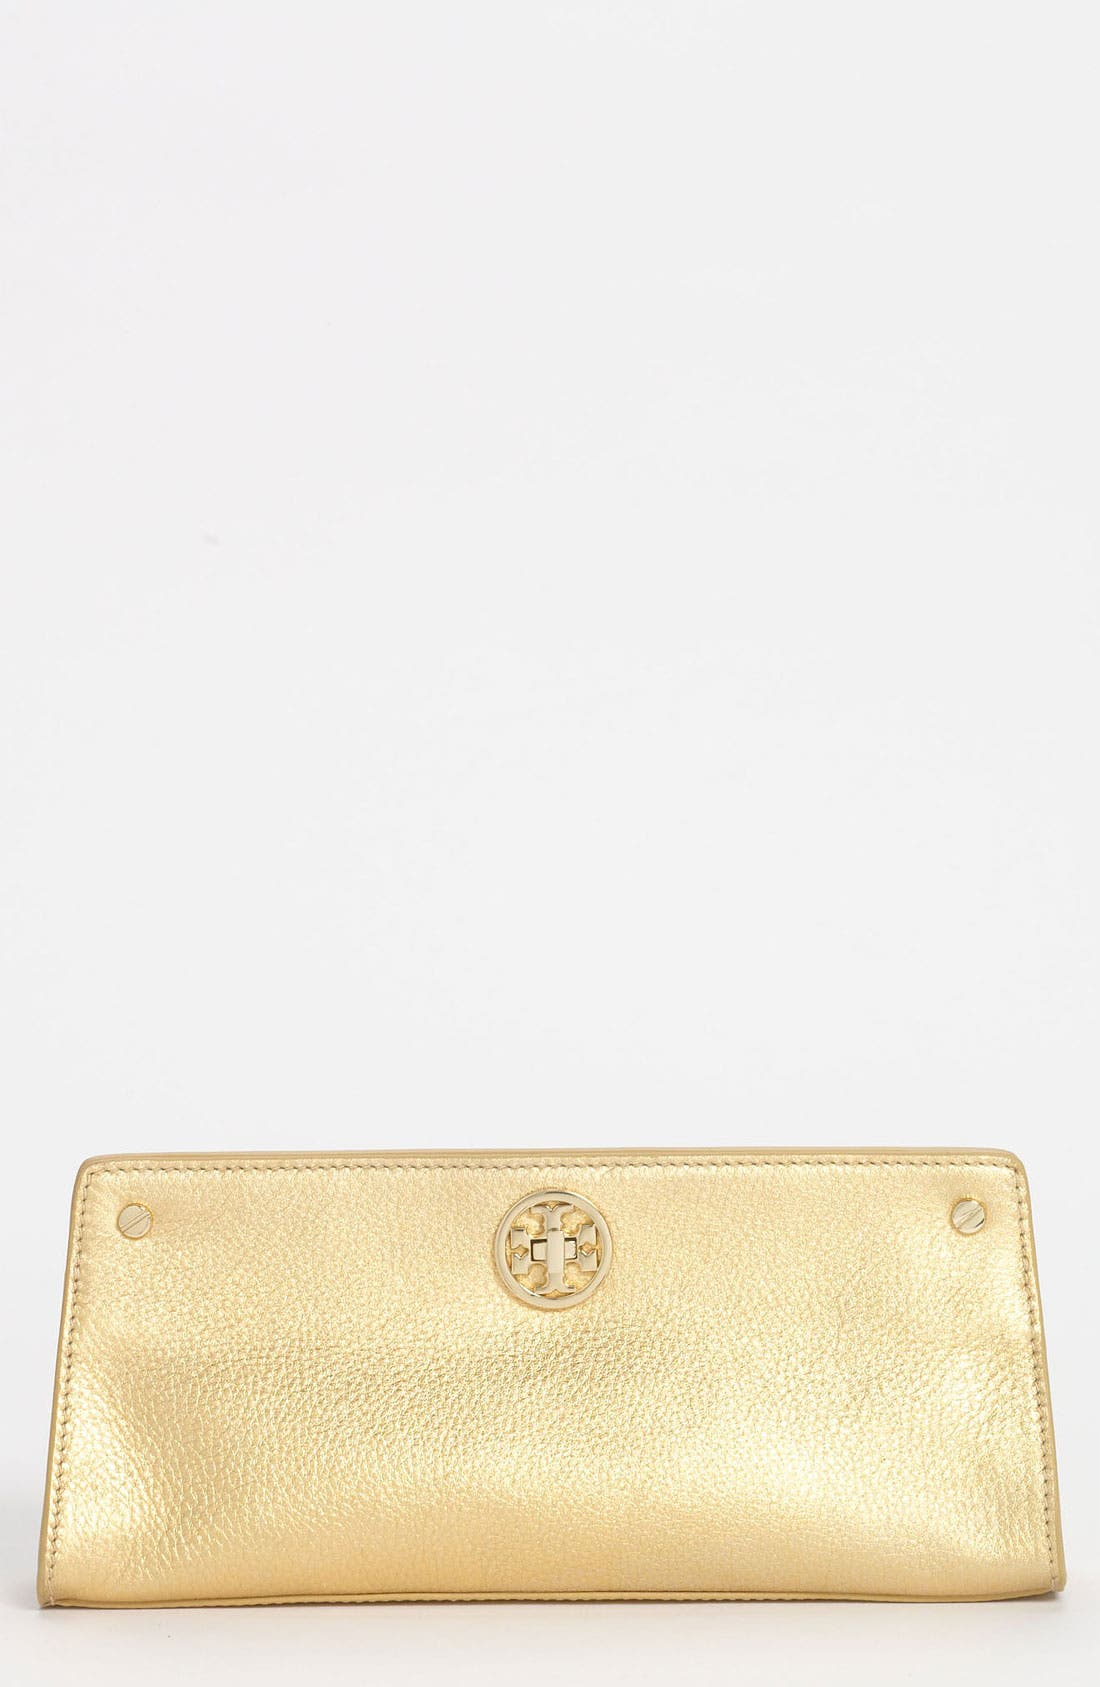 Alternate Image 1 Selected - Tory Burch 'Austin' Leather Clutch